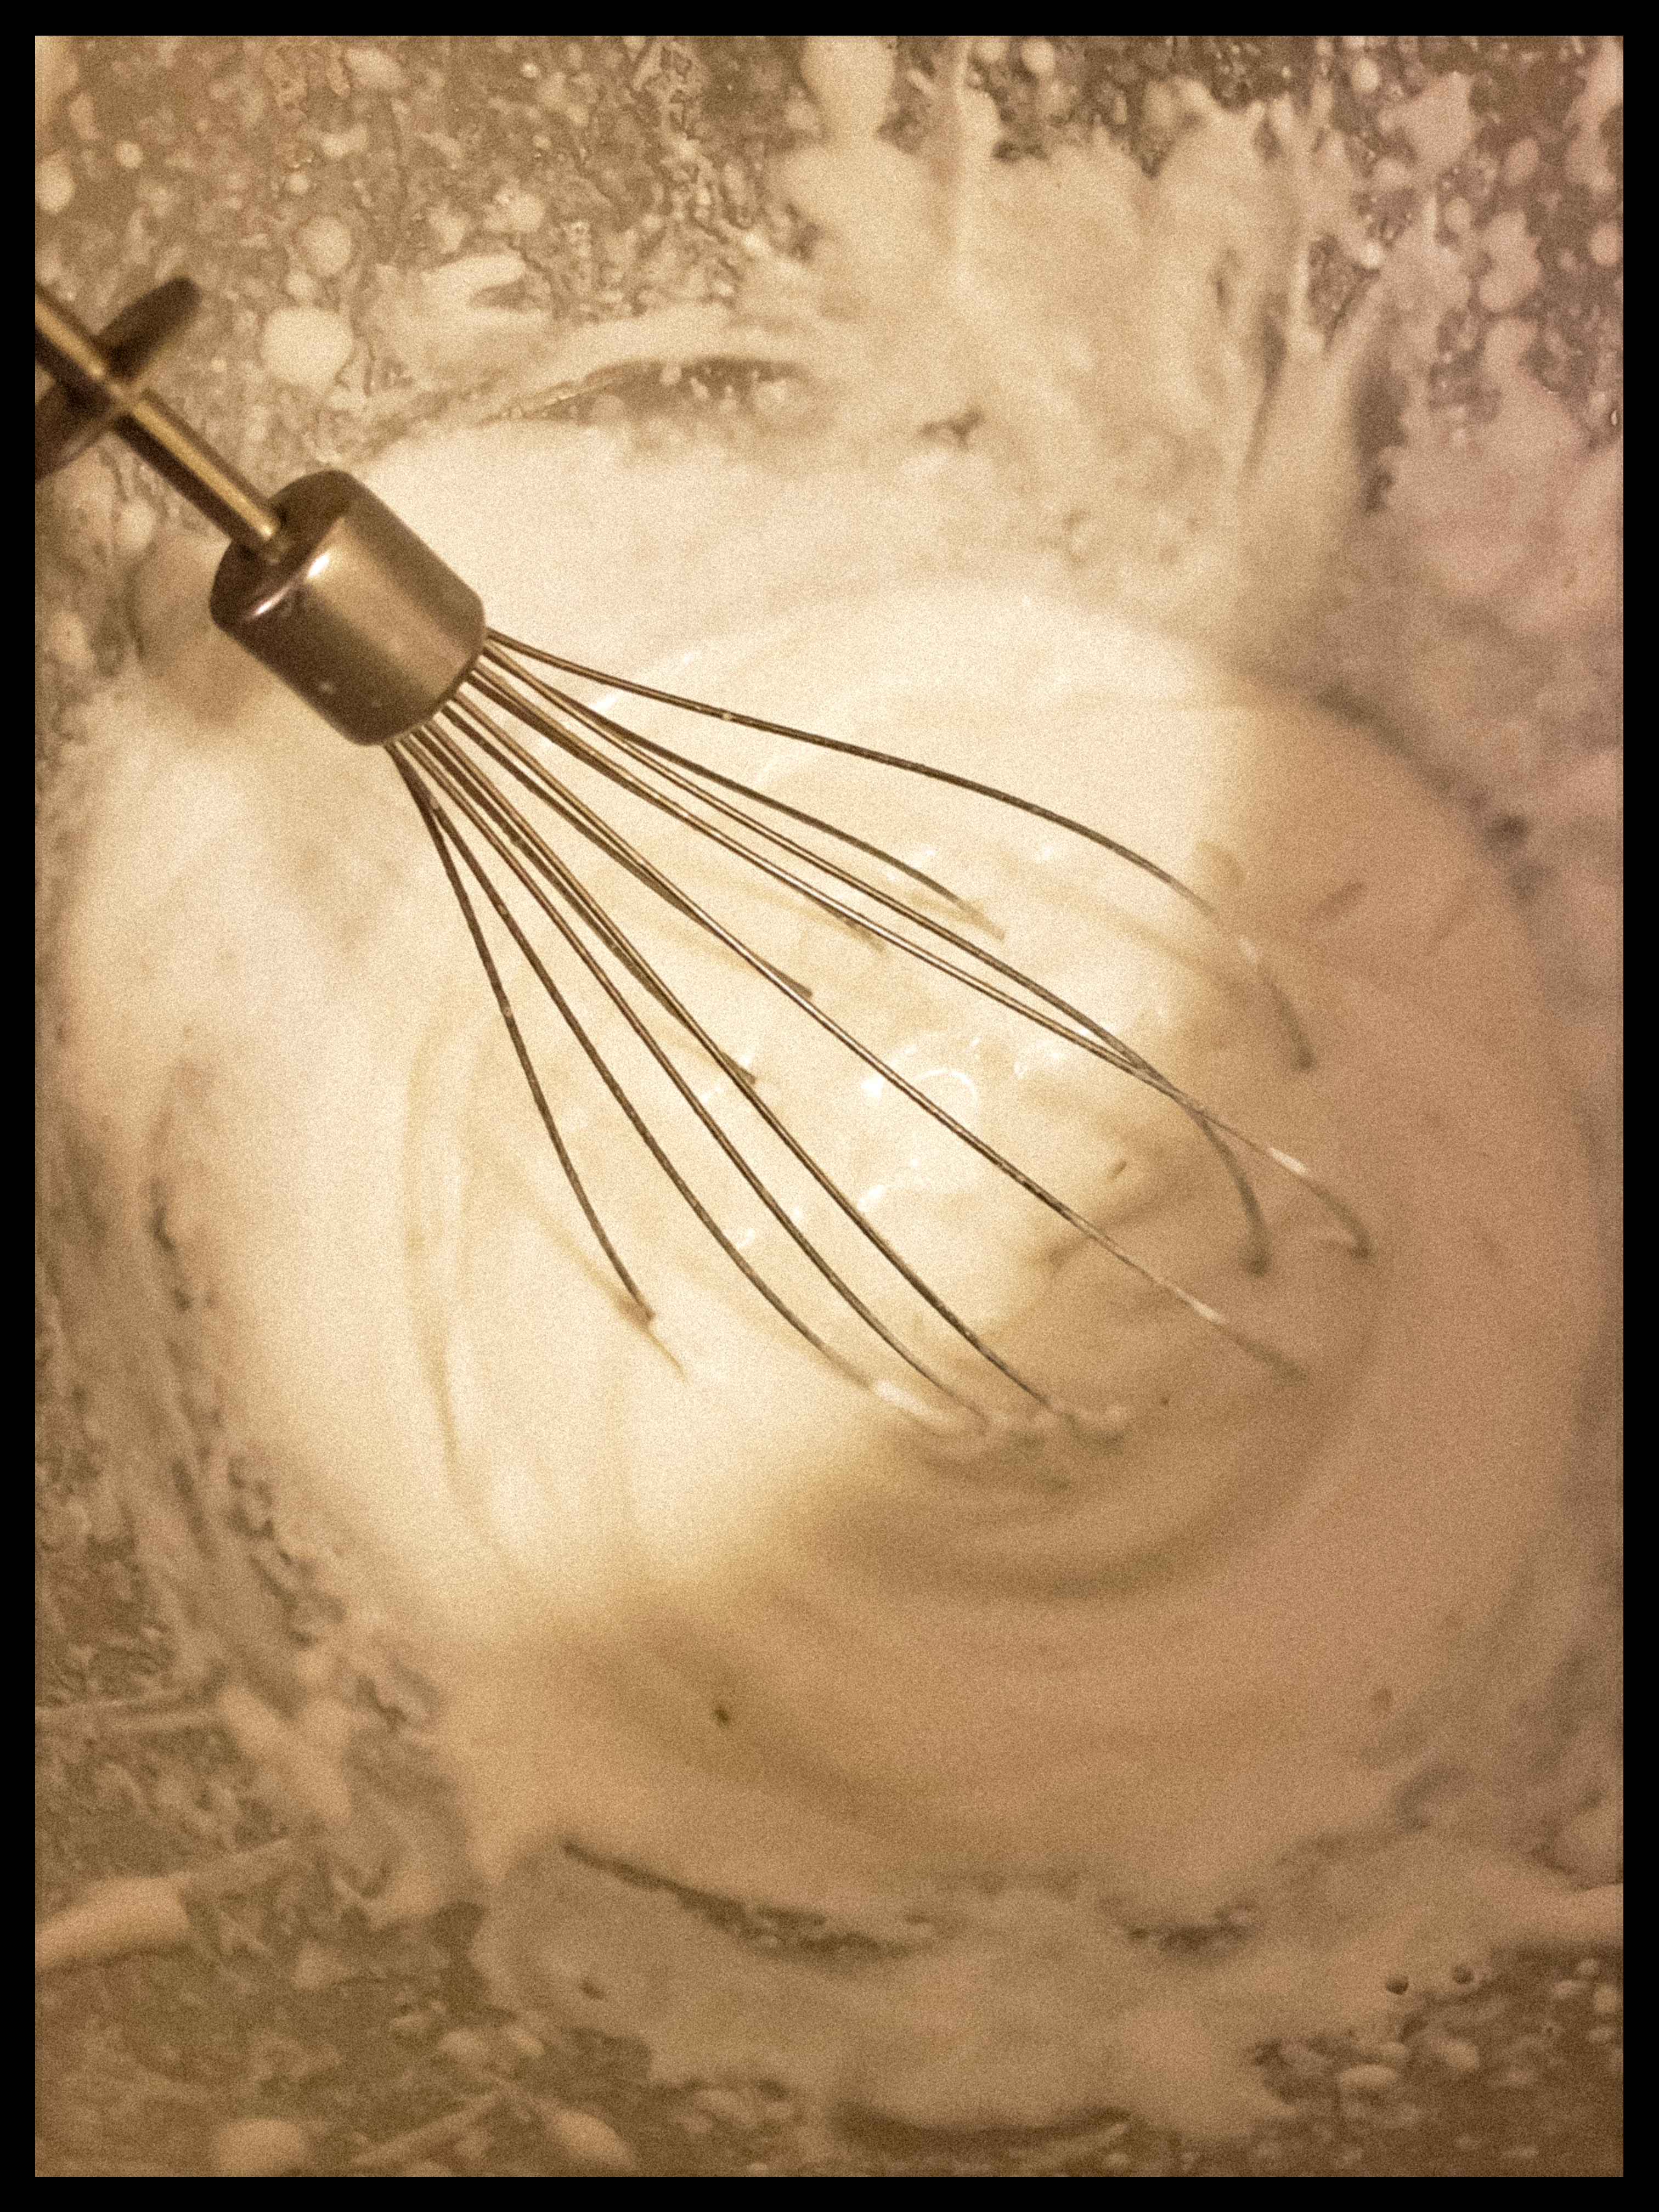 Whipped coconut milk